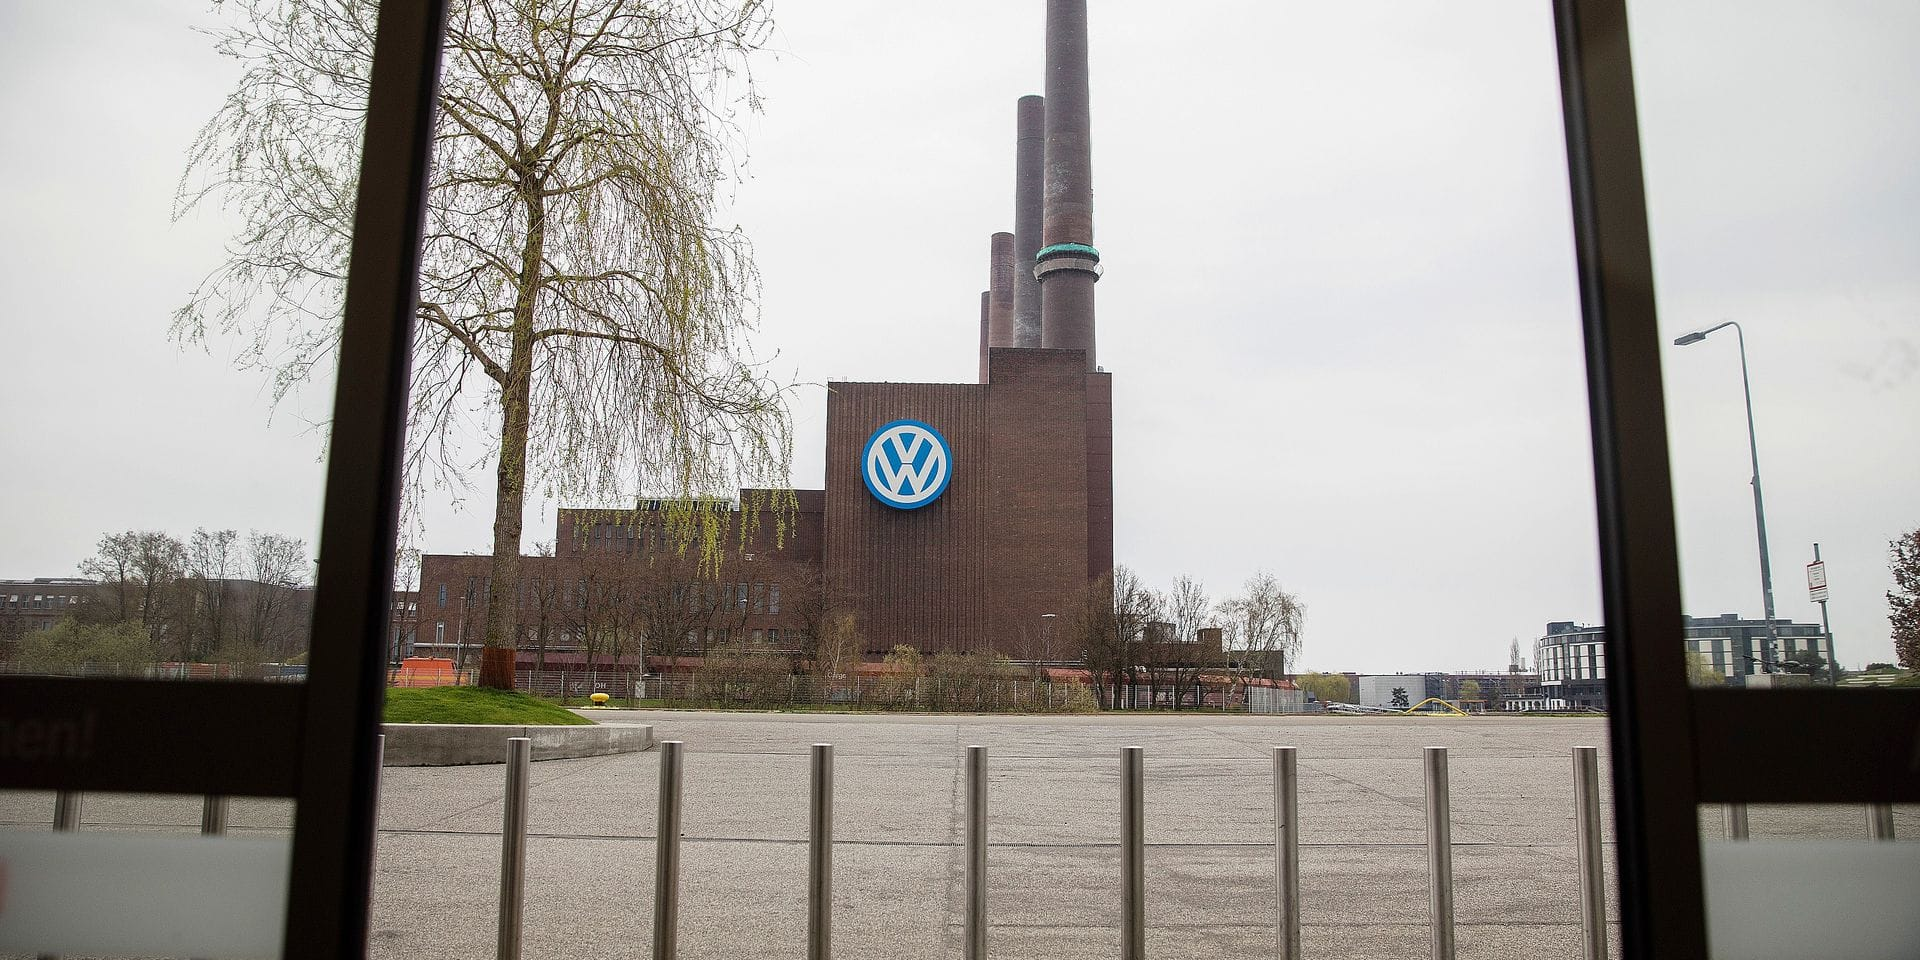 """The plant of German car maker Volkswagen (VW) in Wolfsburg, central Germany, is pictured on April 13, 2018, one day after the company announced a wider management shake-up. Herbert Diess, new chief of German auto giant Volkswagen, was set to outline his plans for steering the company out of the cloud of the """"dieselgate"""" scandal and into a future of electric cars and """"sustainable mobility"""". / AFP PHOTO / Odd ANDERSEN"""